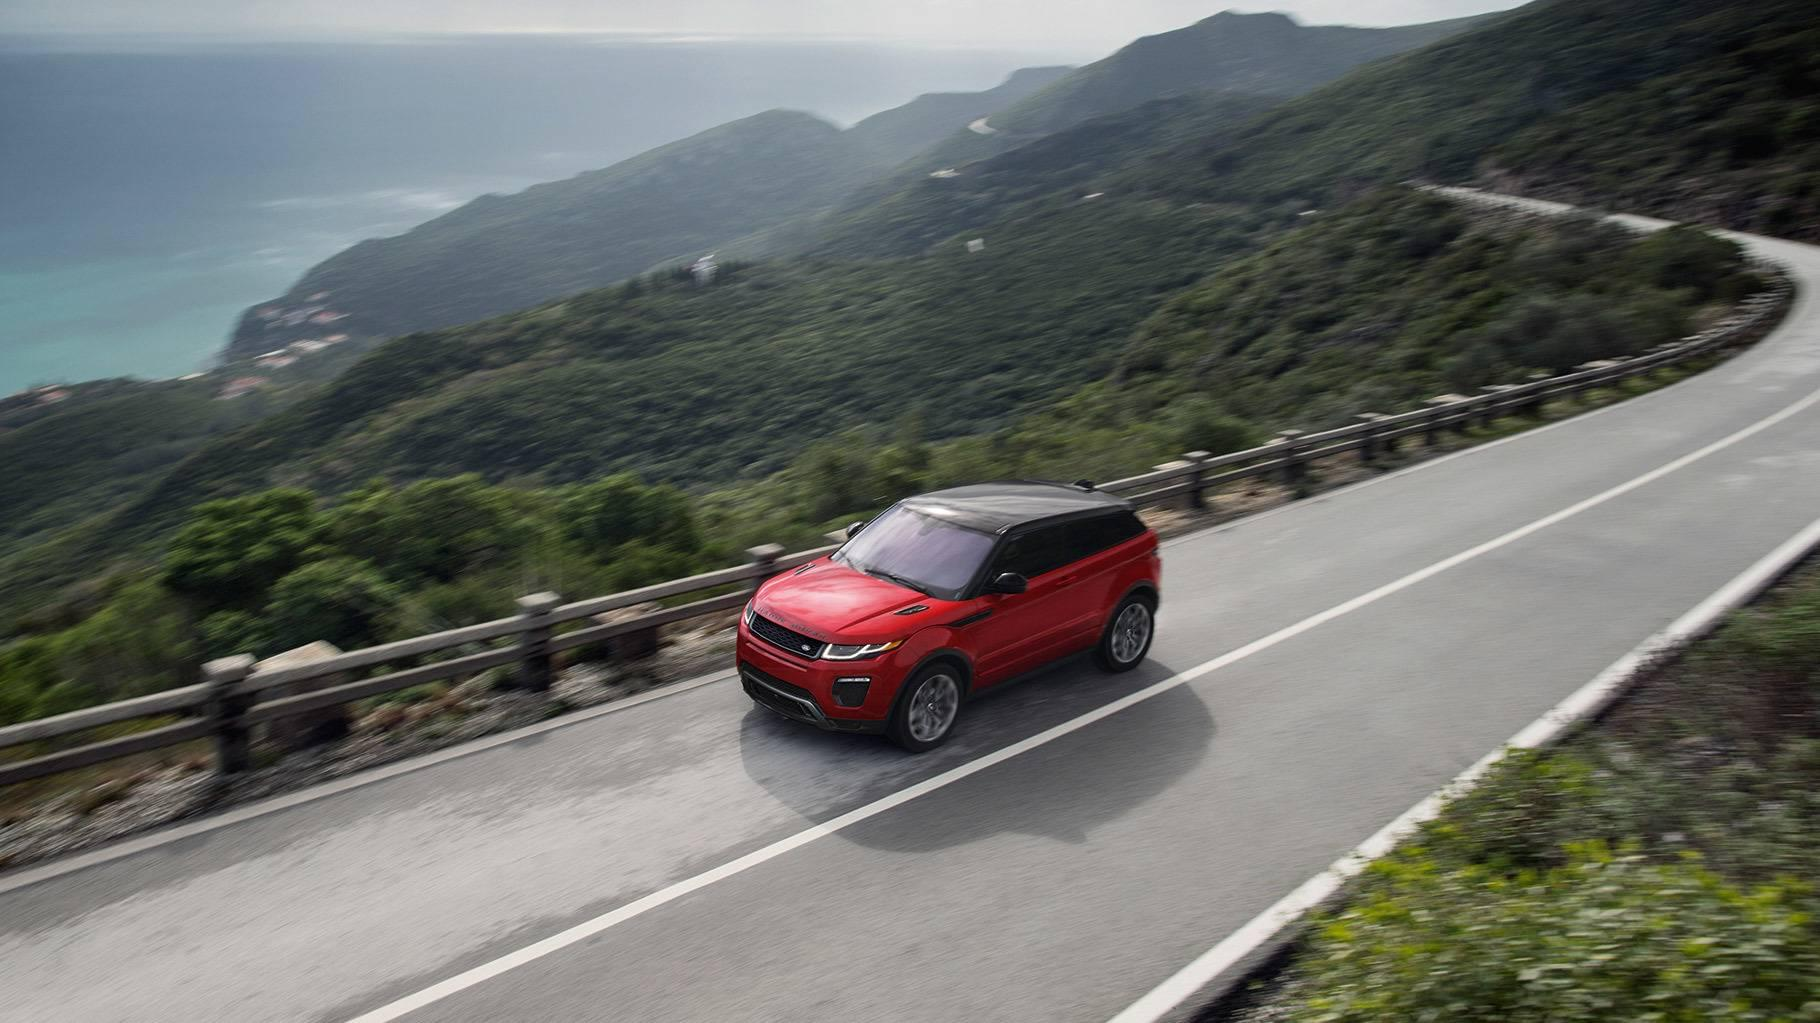 2017 Land Rover Range Rover Evoque Exterior red